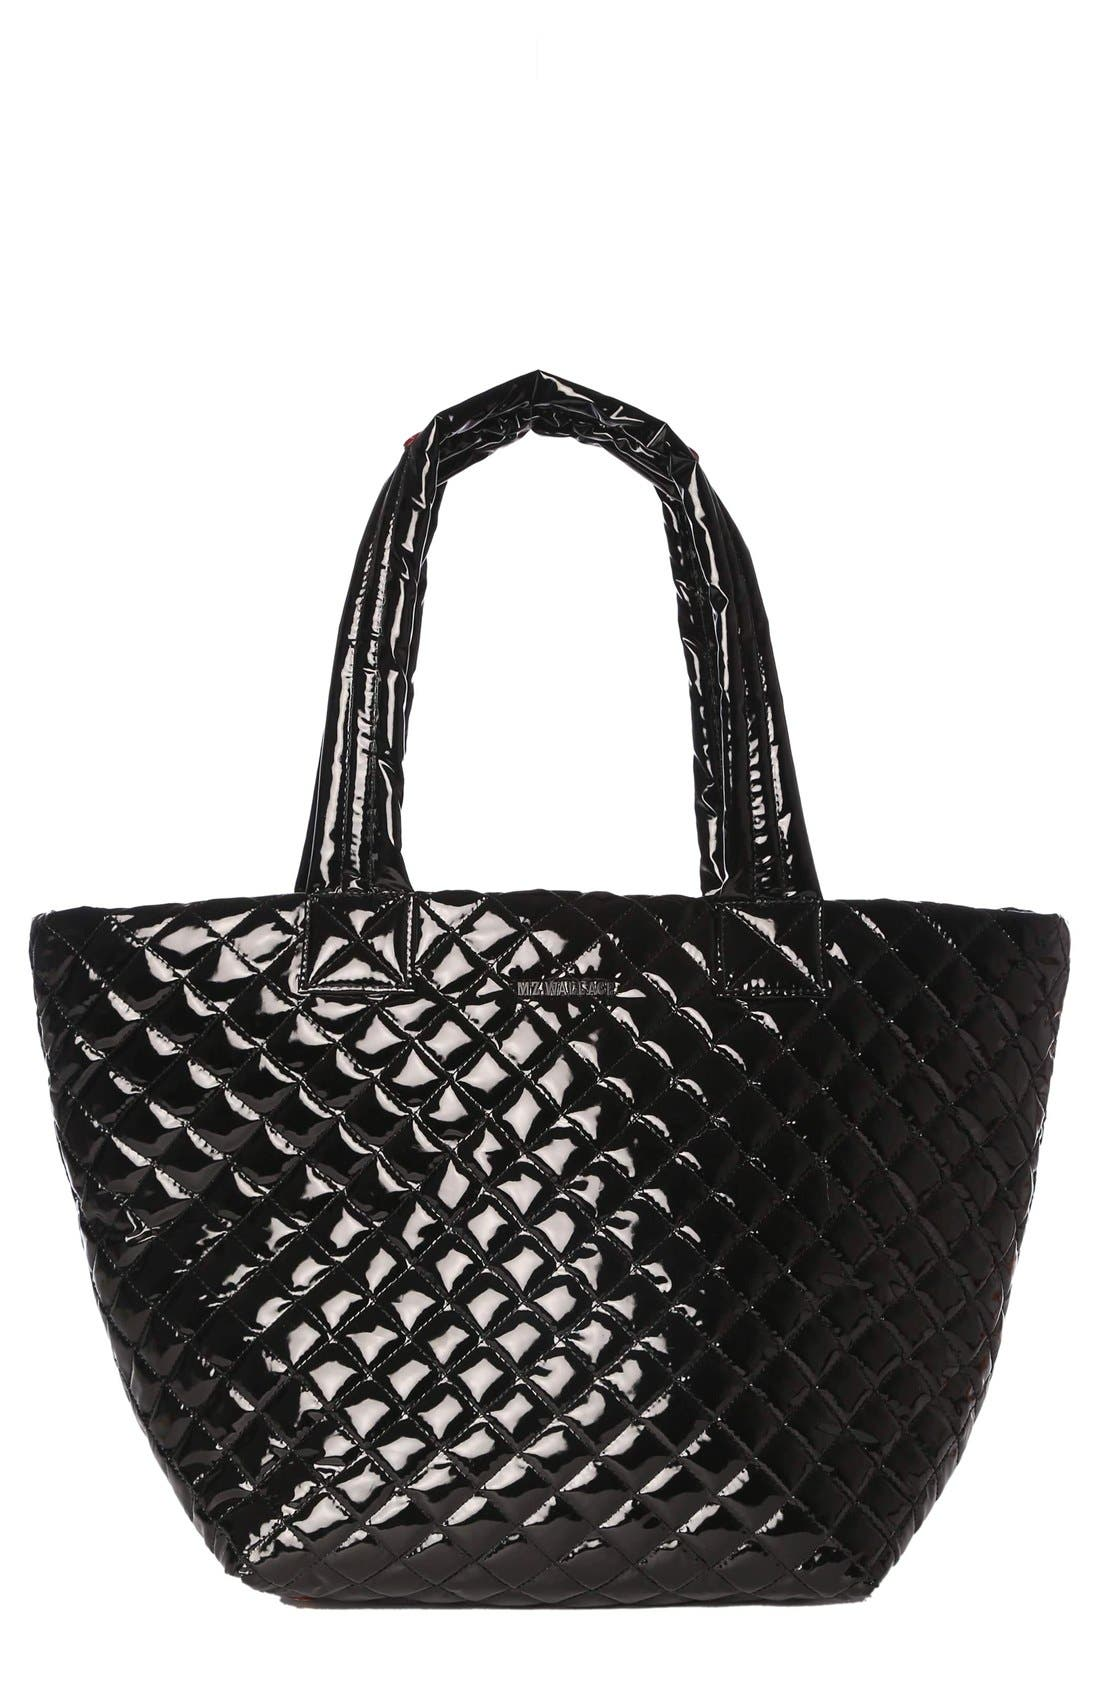 MZ Wallace 'Medium Metro' Quilted Lacquer Tote